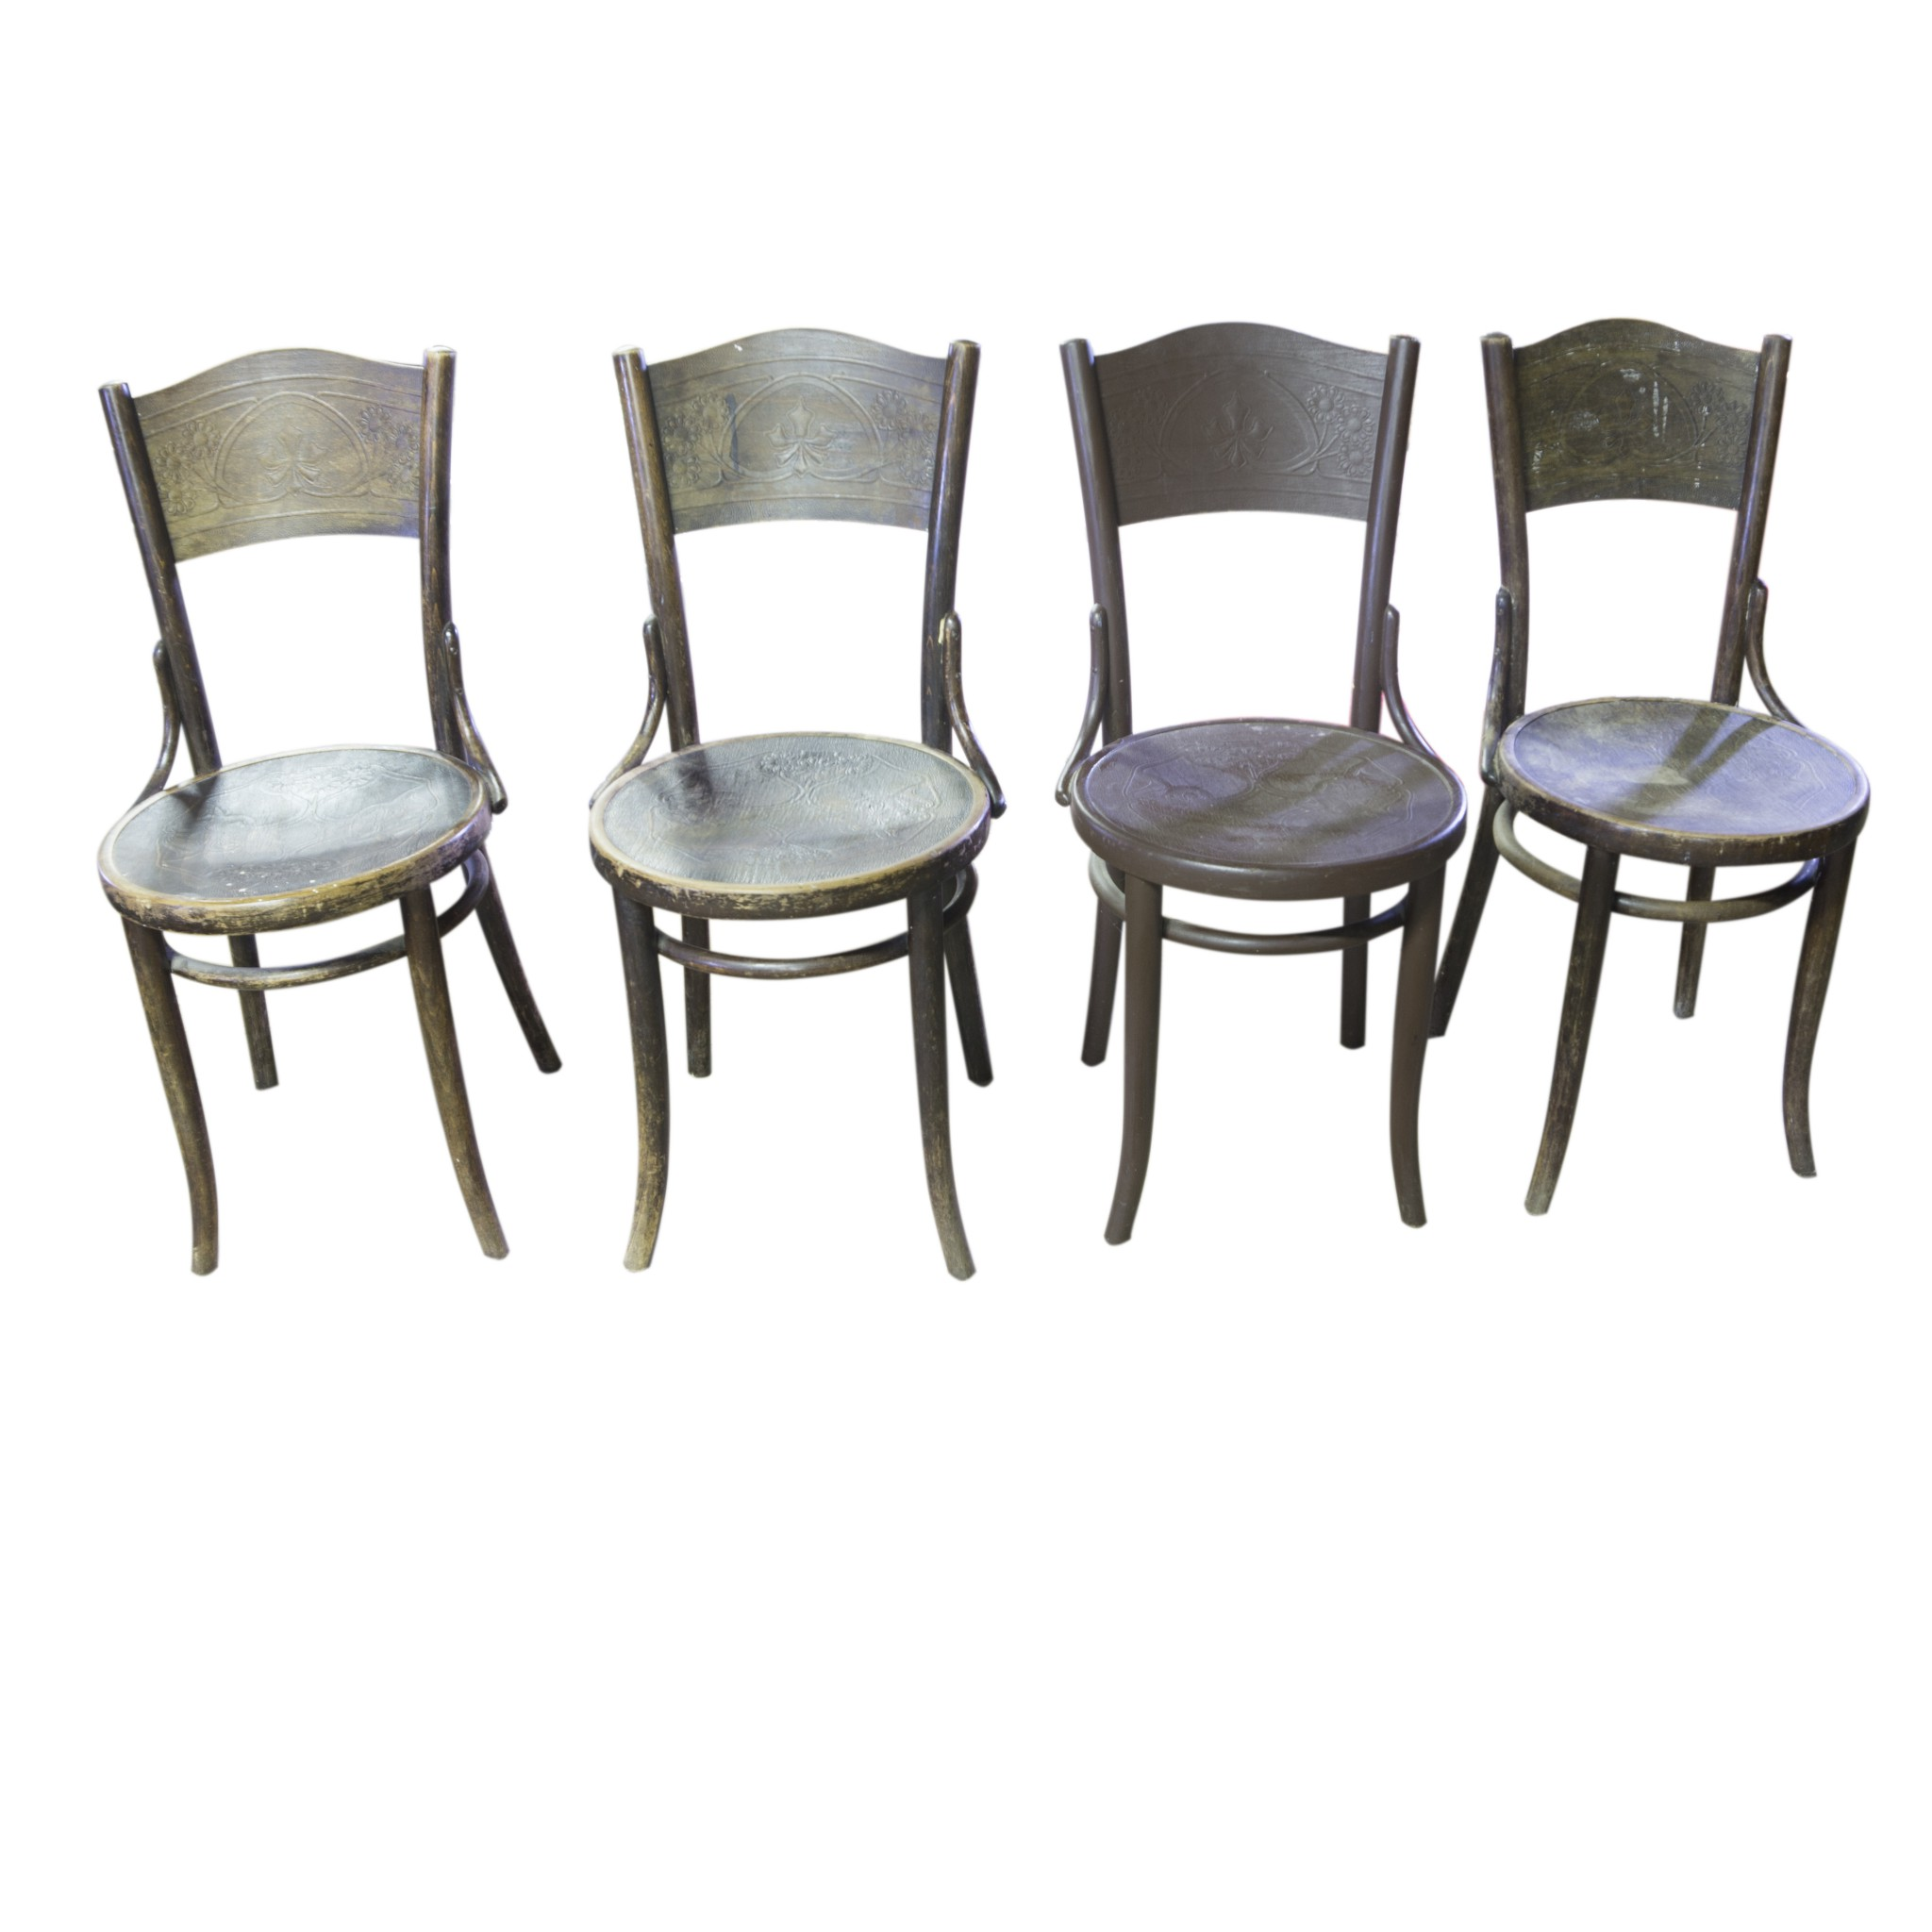 lightbox  sc 1 st  Your20th.com & Set of four Thonet Mundus chairs circa 1920 German. | Your20th.com ...